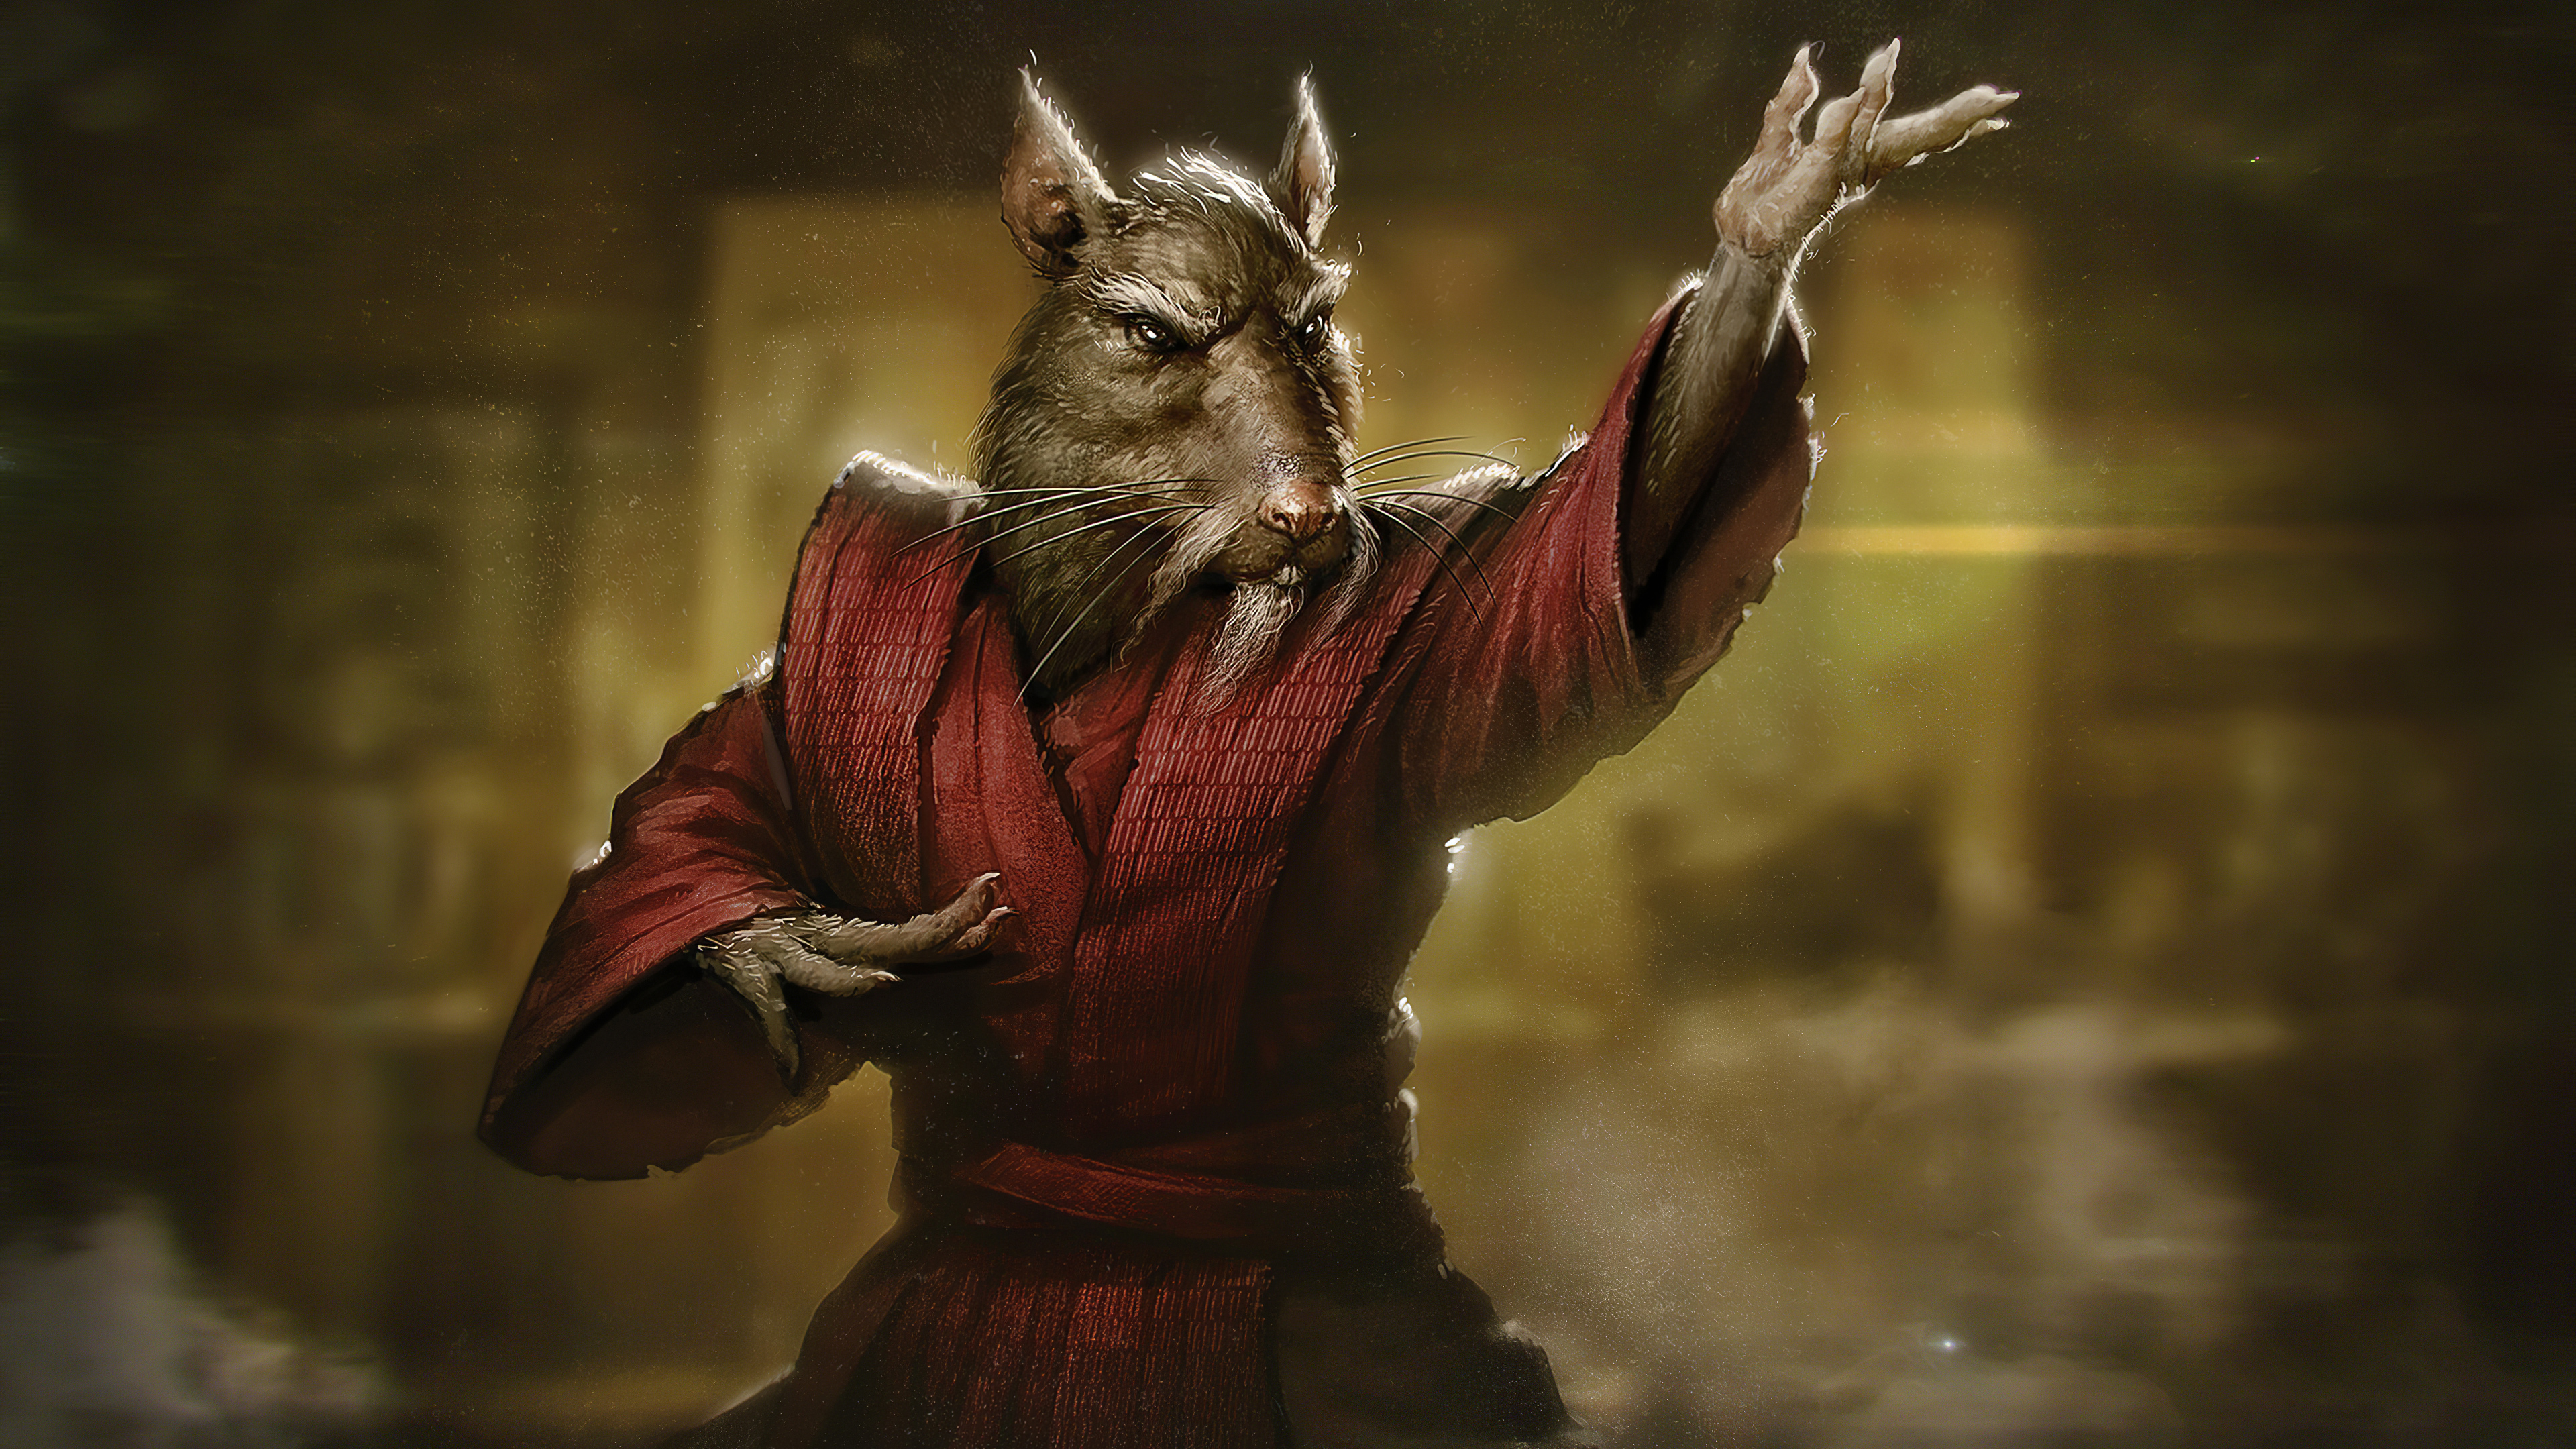 TMNT Master Splinter 4k, HD Superheroes, 4k Wallpapers, Images,  Backgrounds, Photos and Pictures